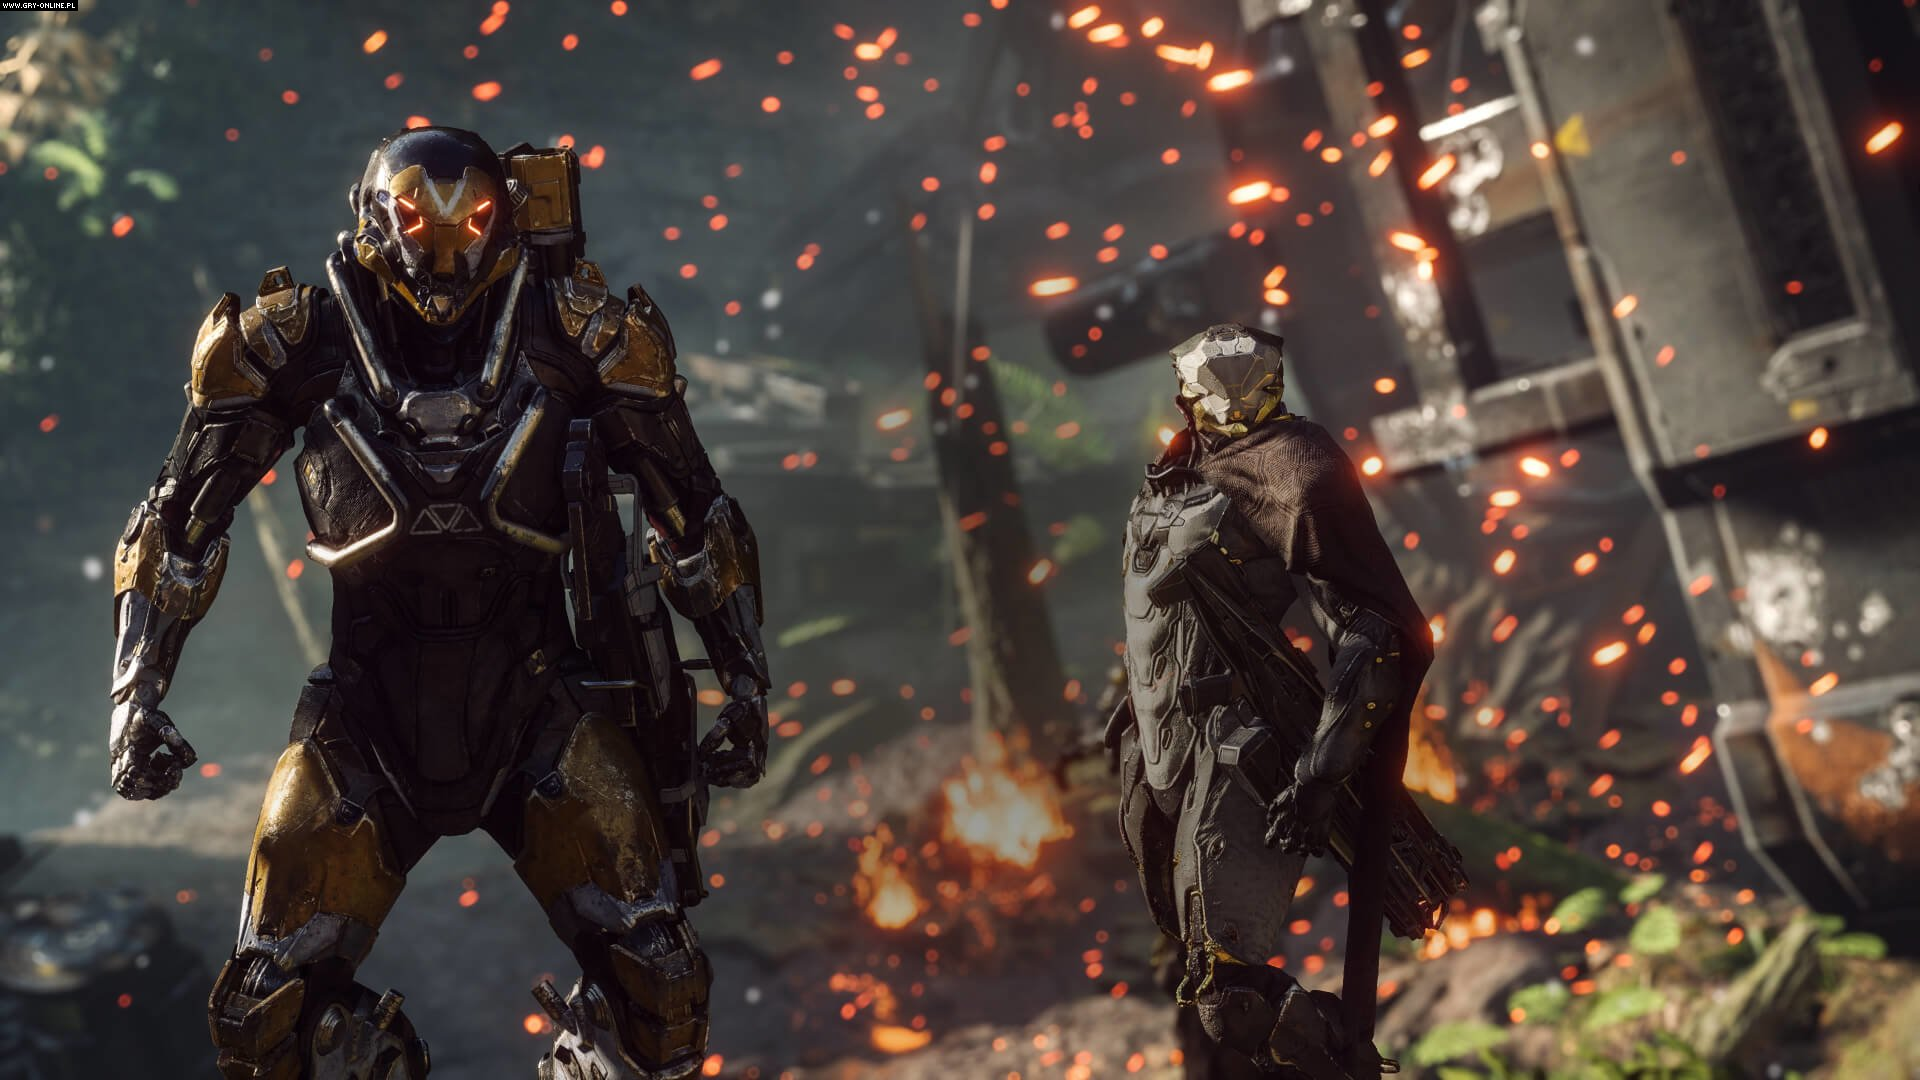 Anthem PC, PS4, XONE Gry Screen 35/52, BioWare Corporation, Electronic Arts Inc.